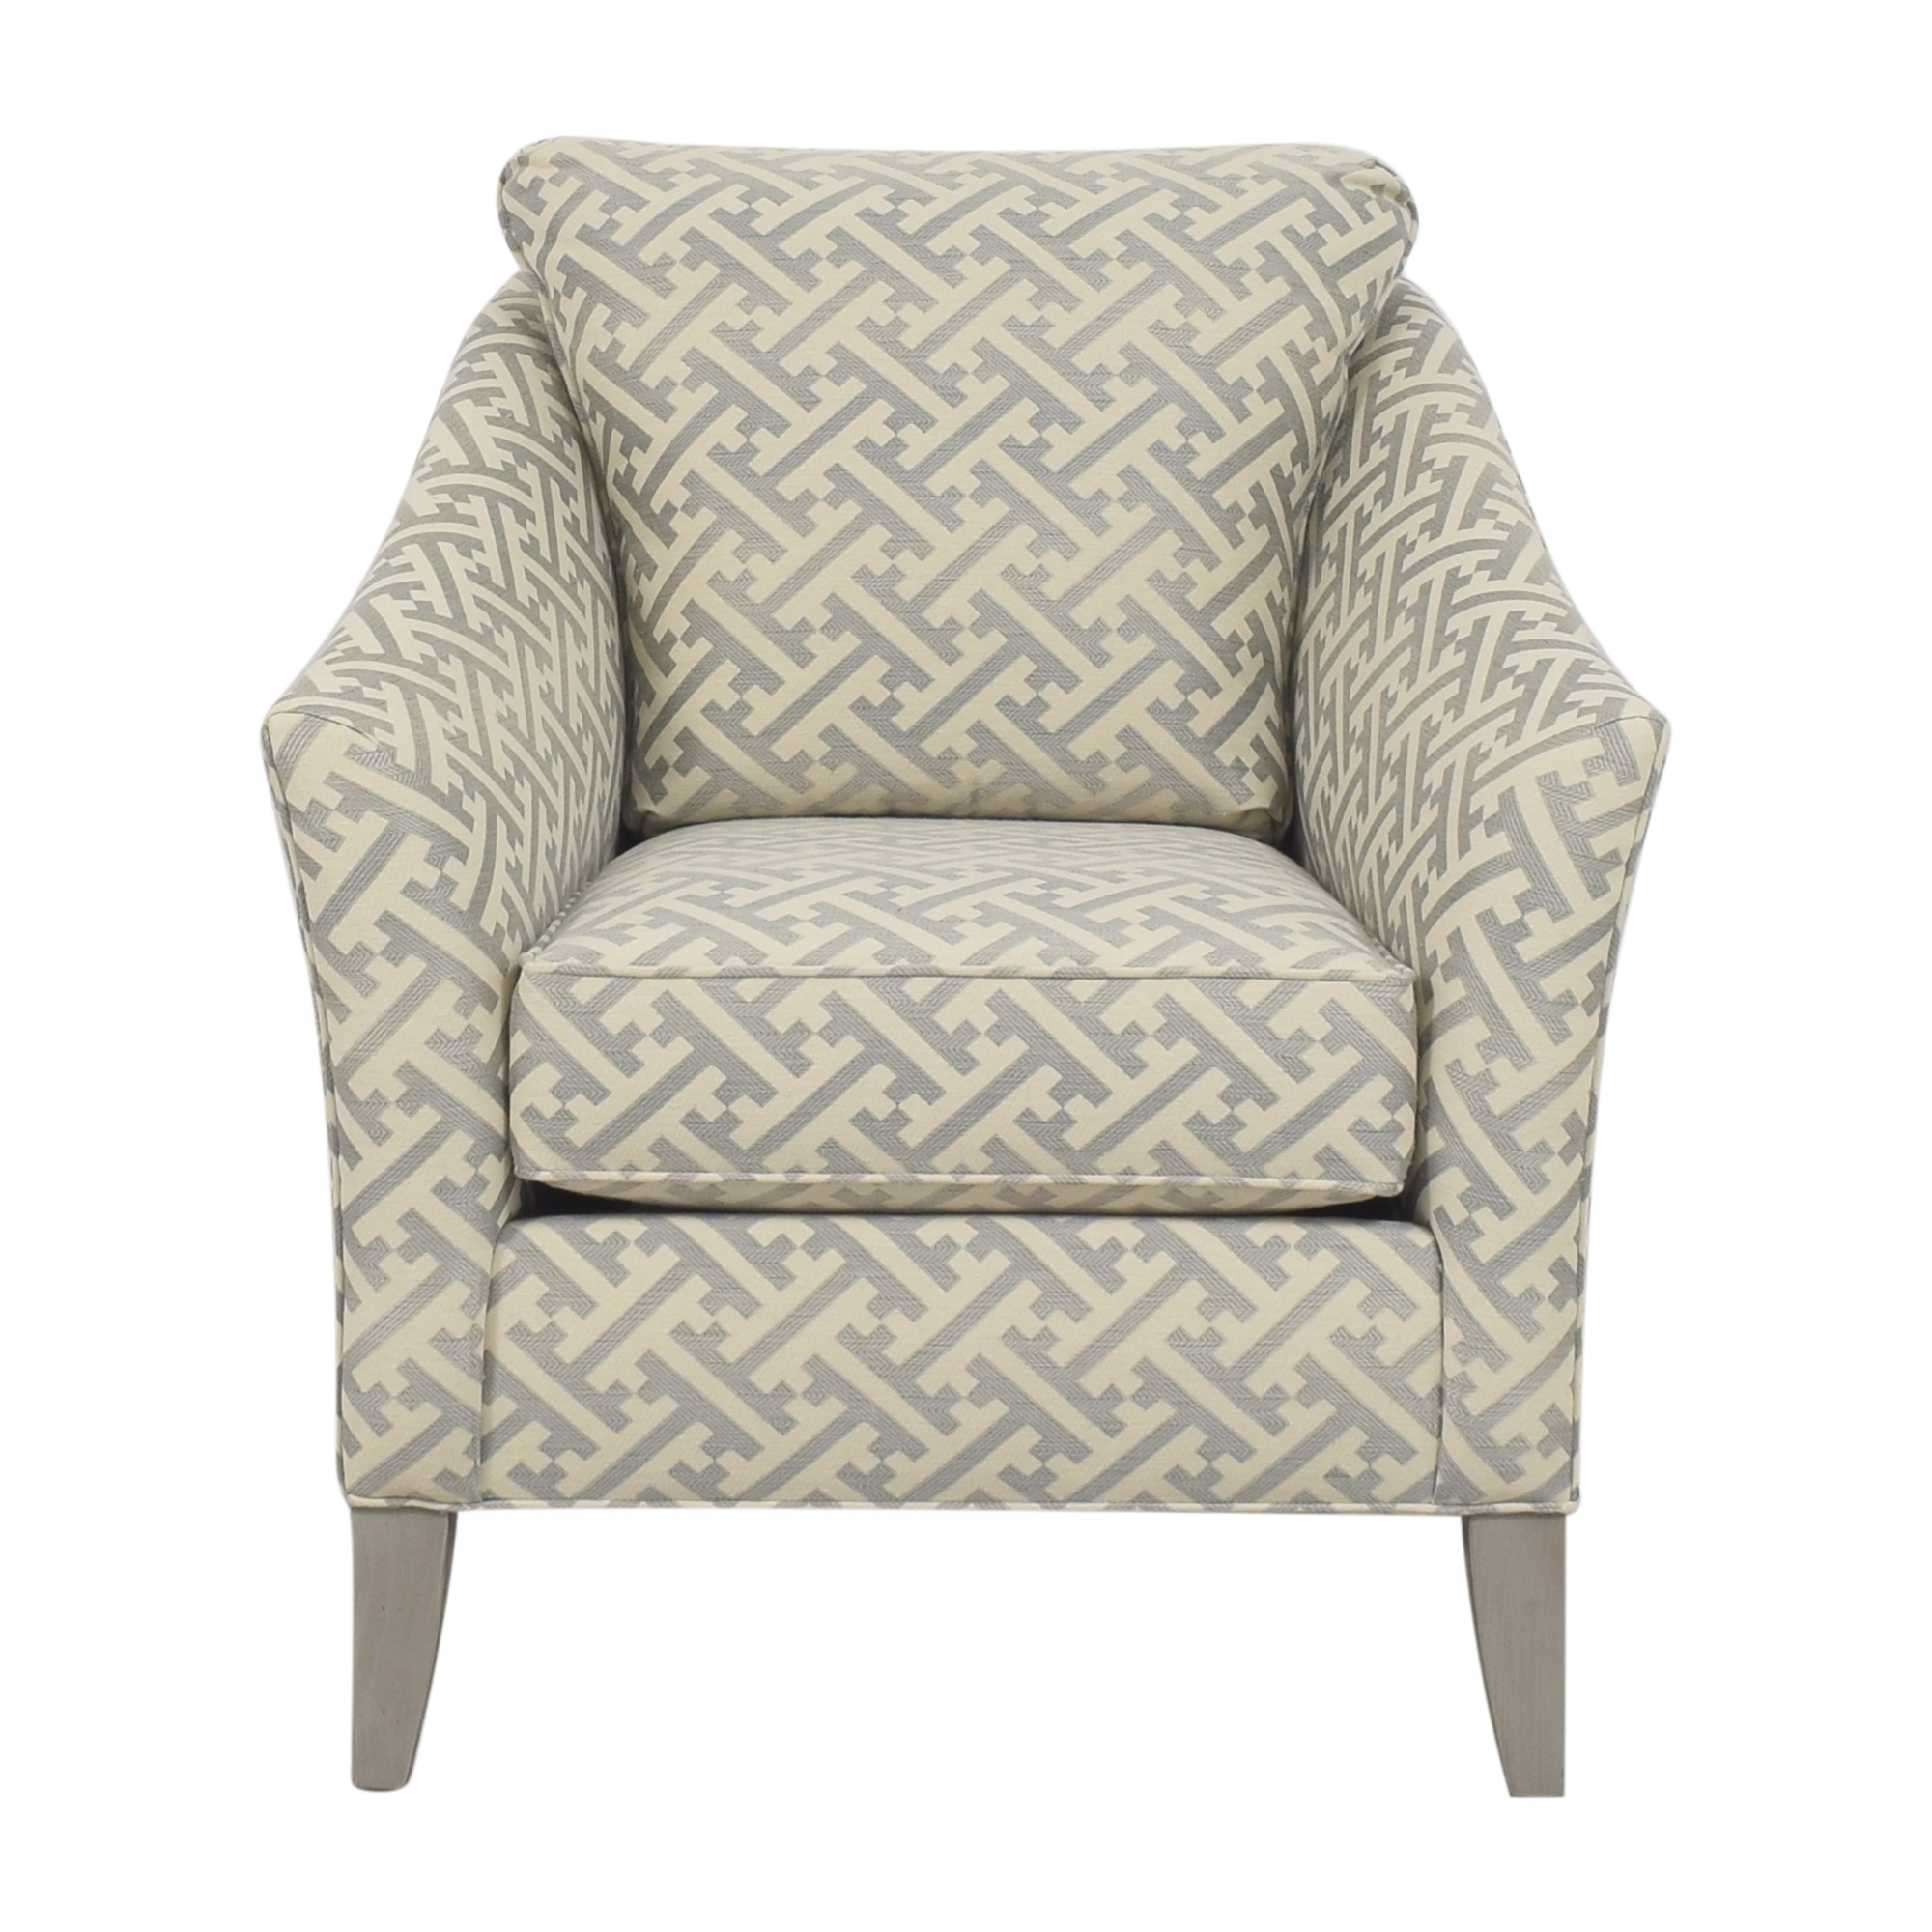 Ethan Allen Ethan Allen Gibson Arm Chair coupon